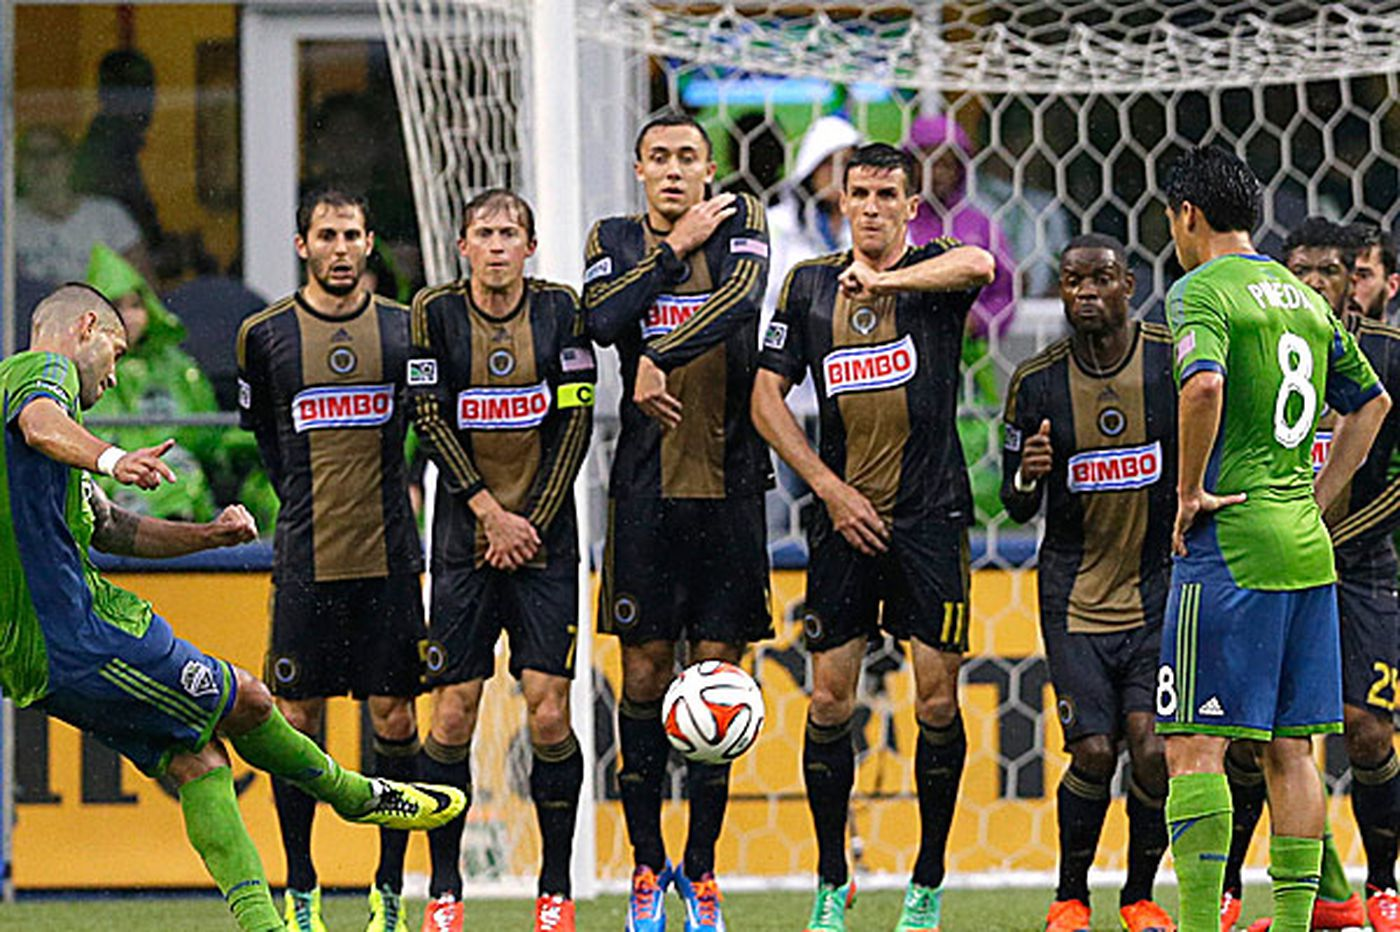 Union falls to Sounders